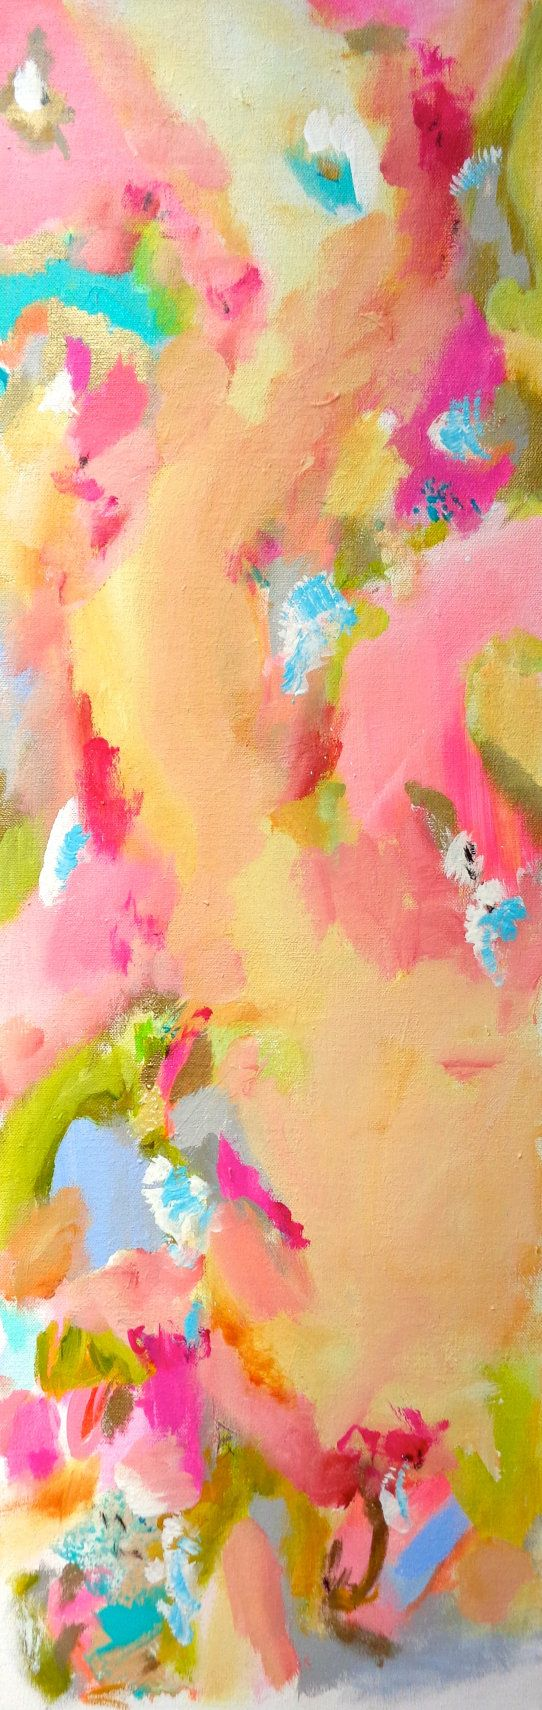 Abstract Floral Painting Wall Botanical Susan by susanskelleyart